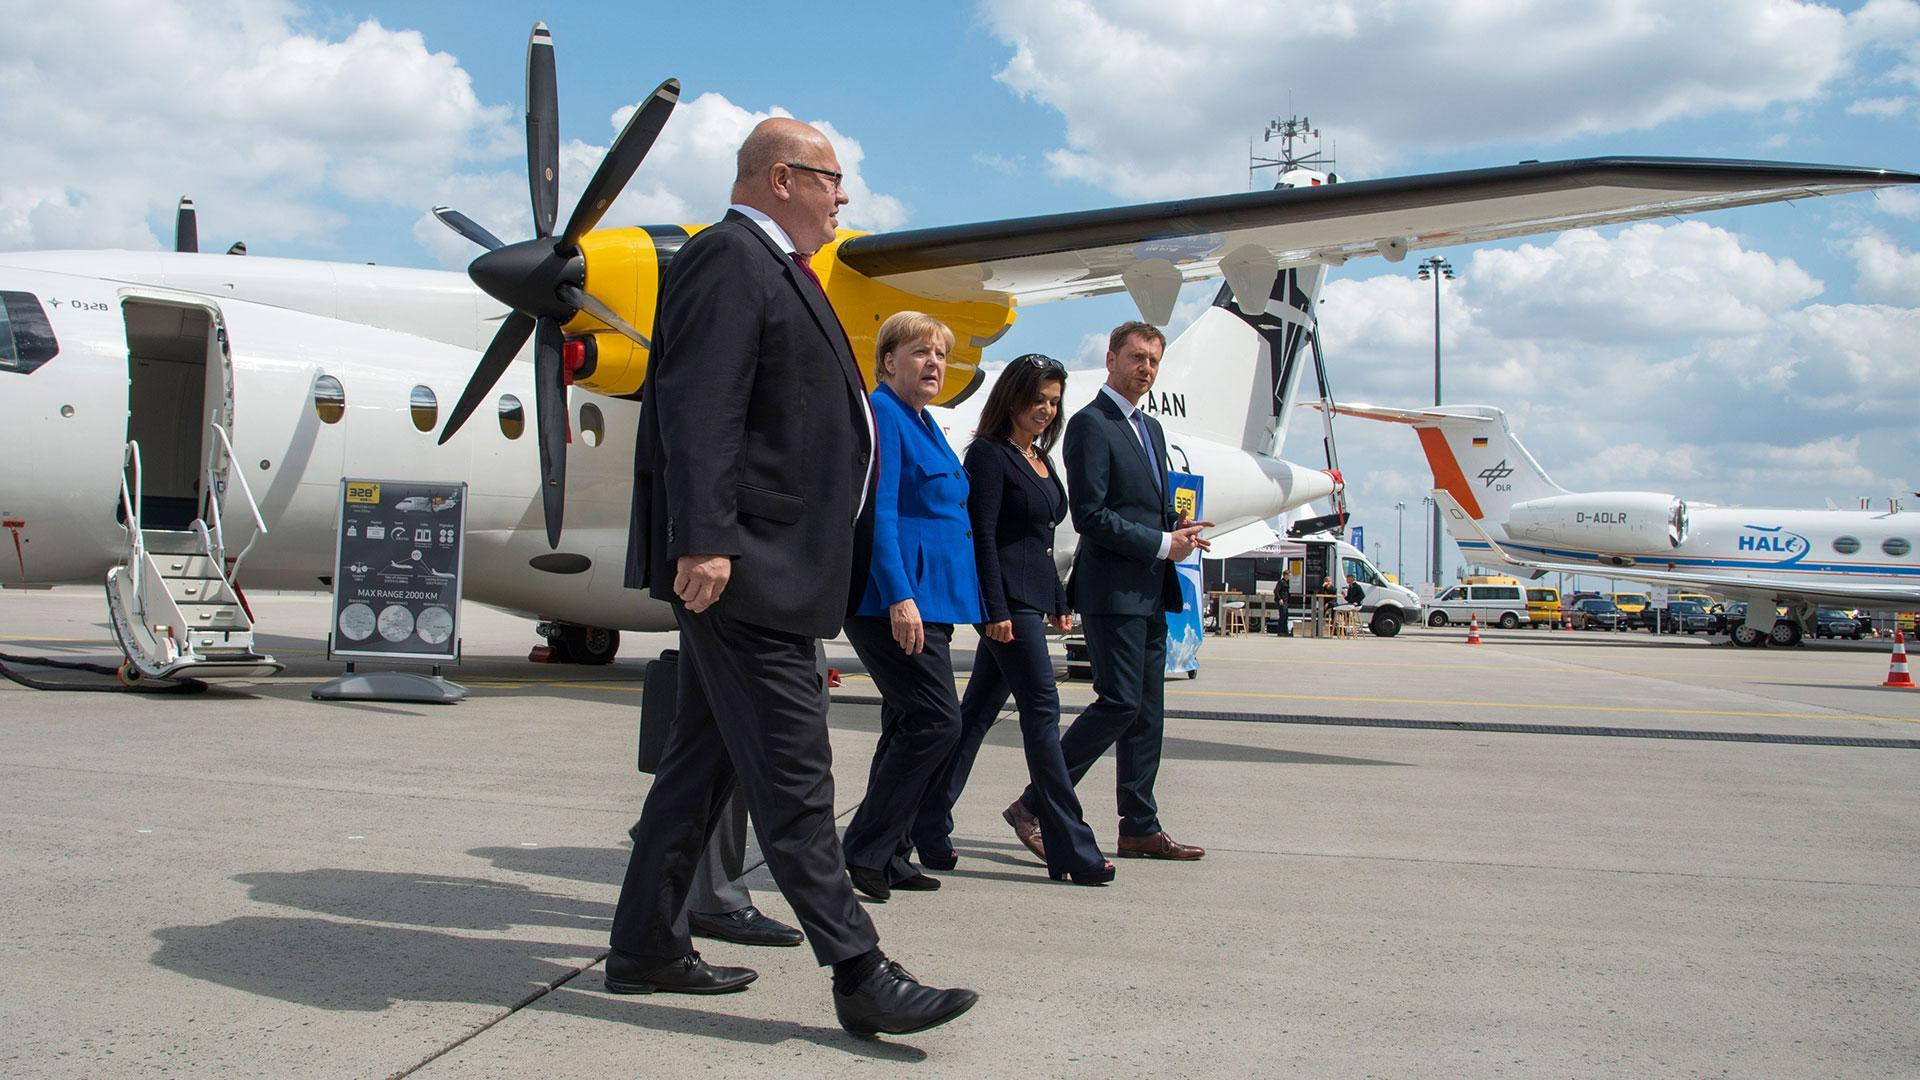 German Federal Chancellor Merkel and Economic Affairs and Energy Minister Altmaier visit the first National Aeronautics Conference